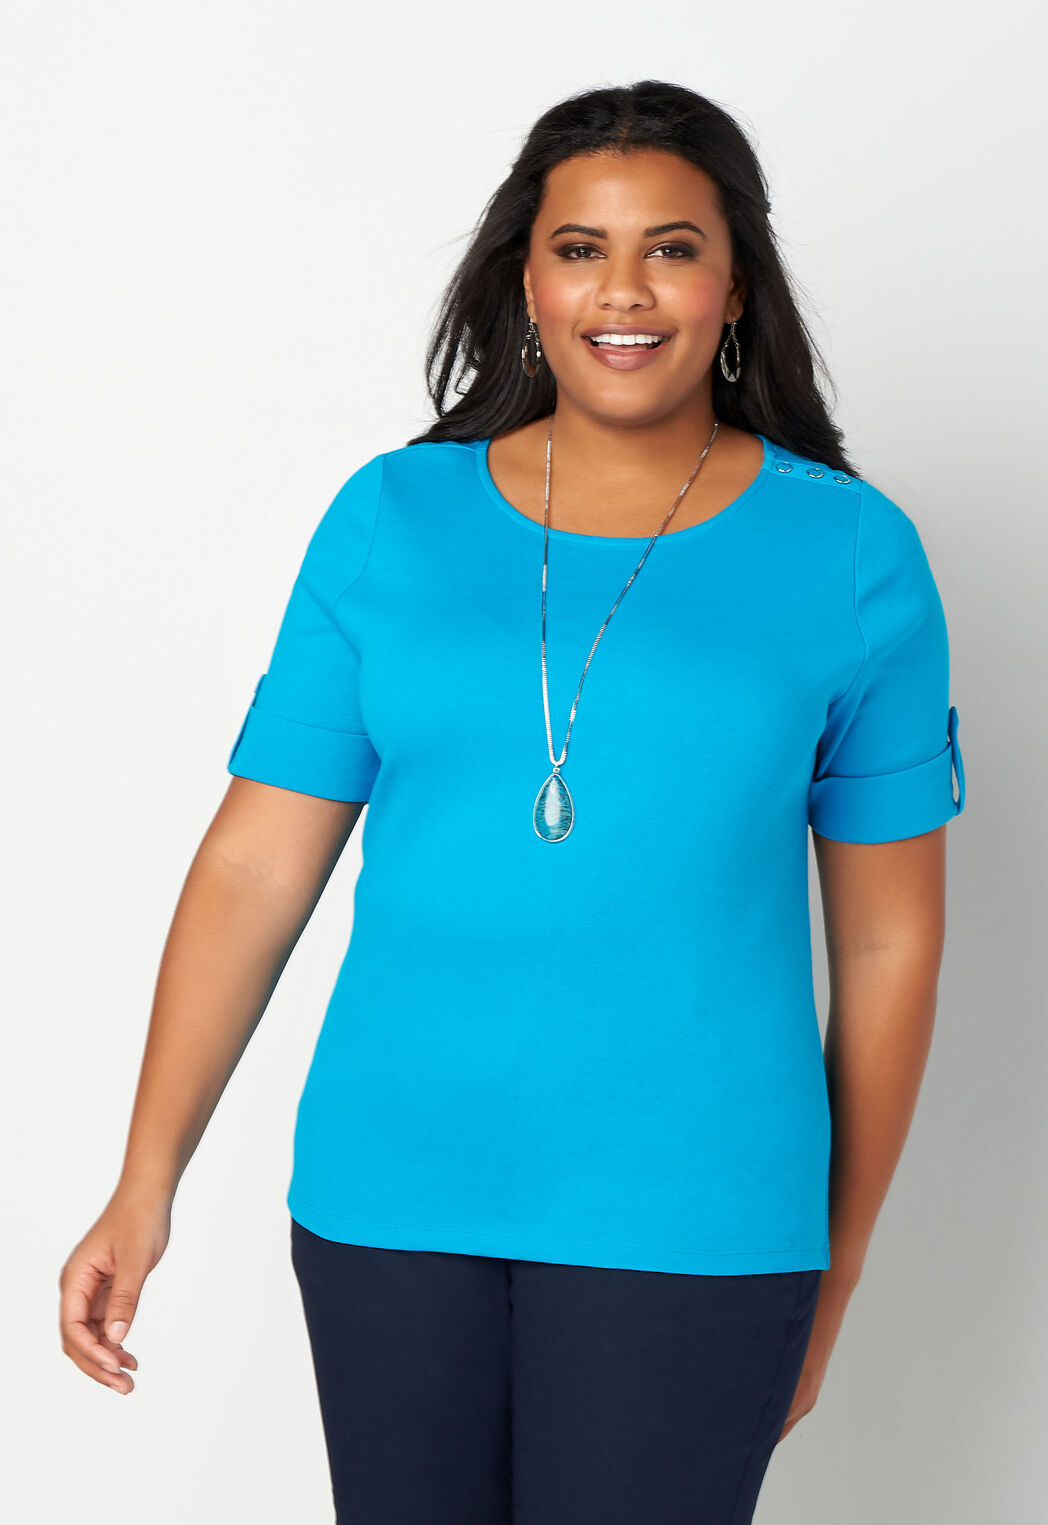 0dfa9d592 ... Tops Solid Elbow Sleeve Shoulder Detail Plus Size Boatneck. add to wish  list · add to wish list